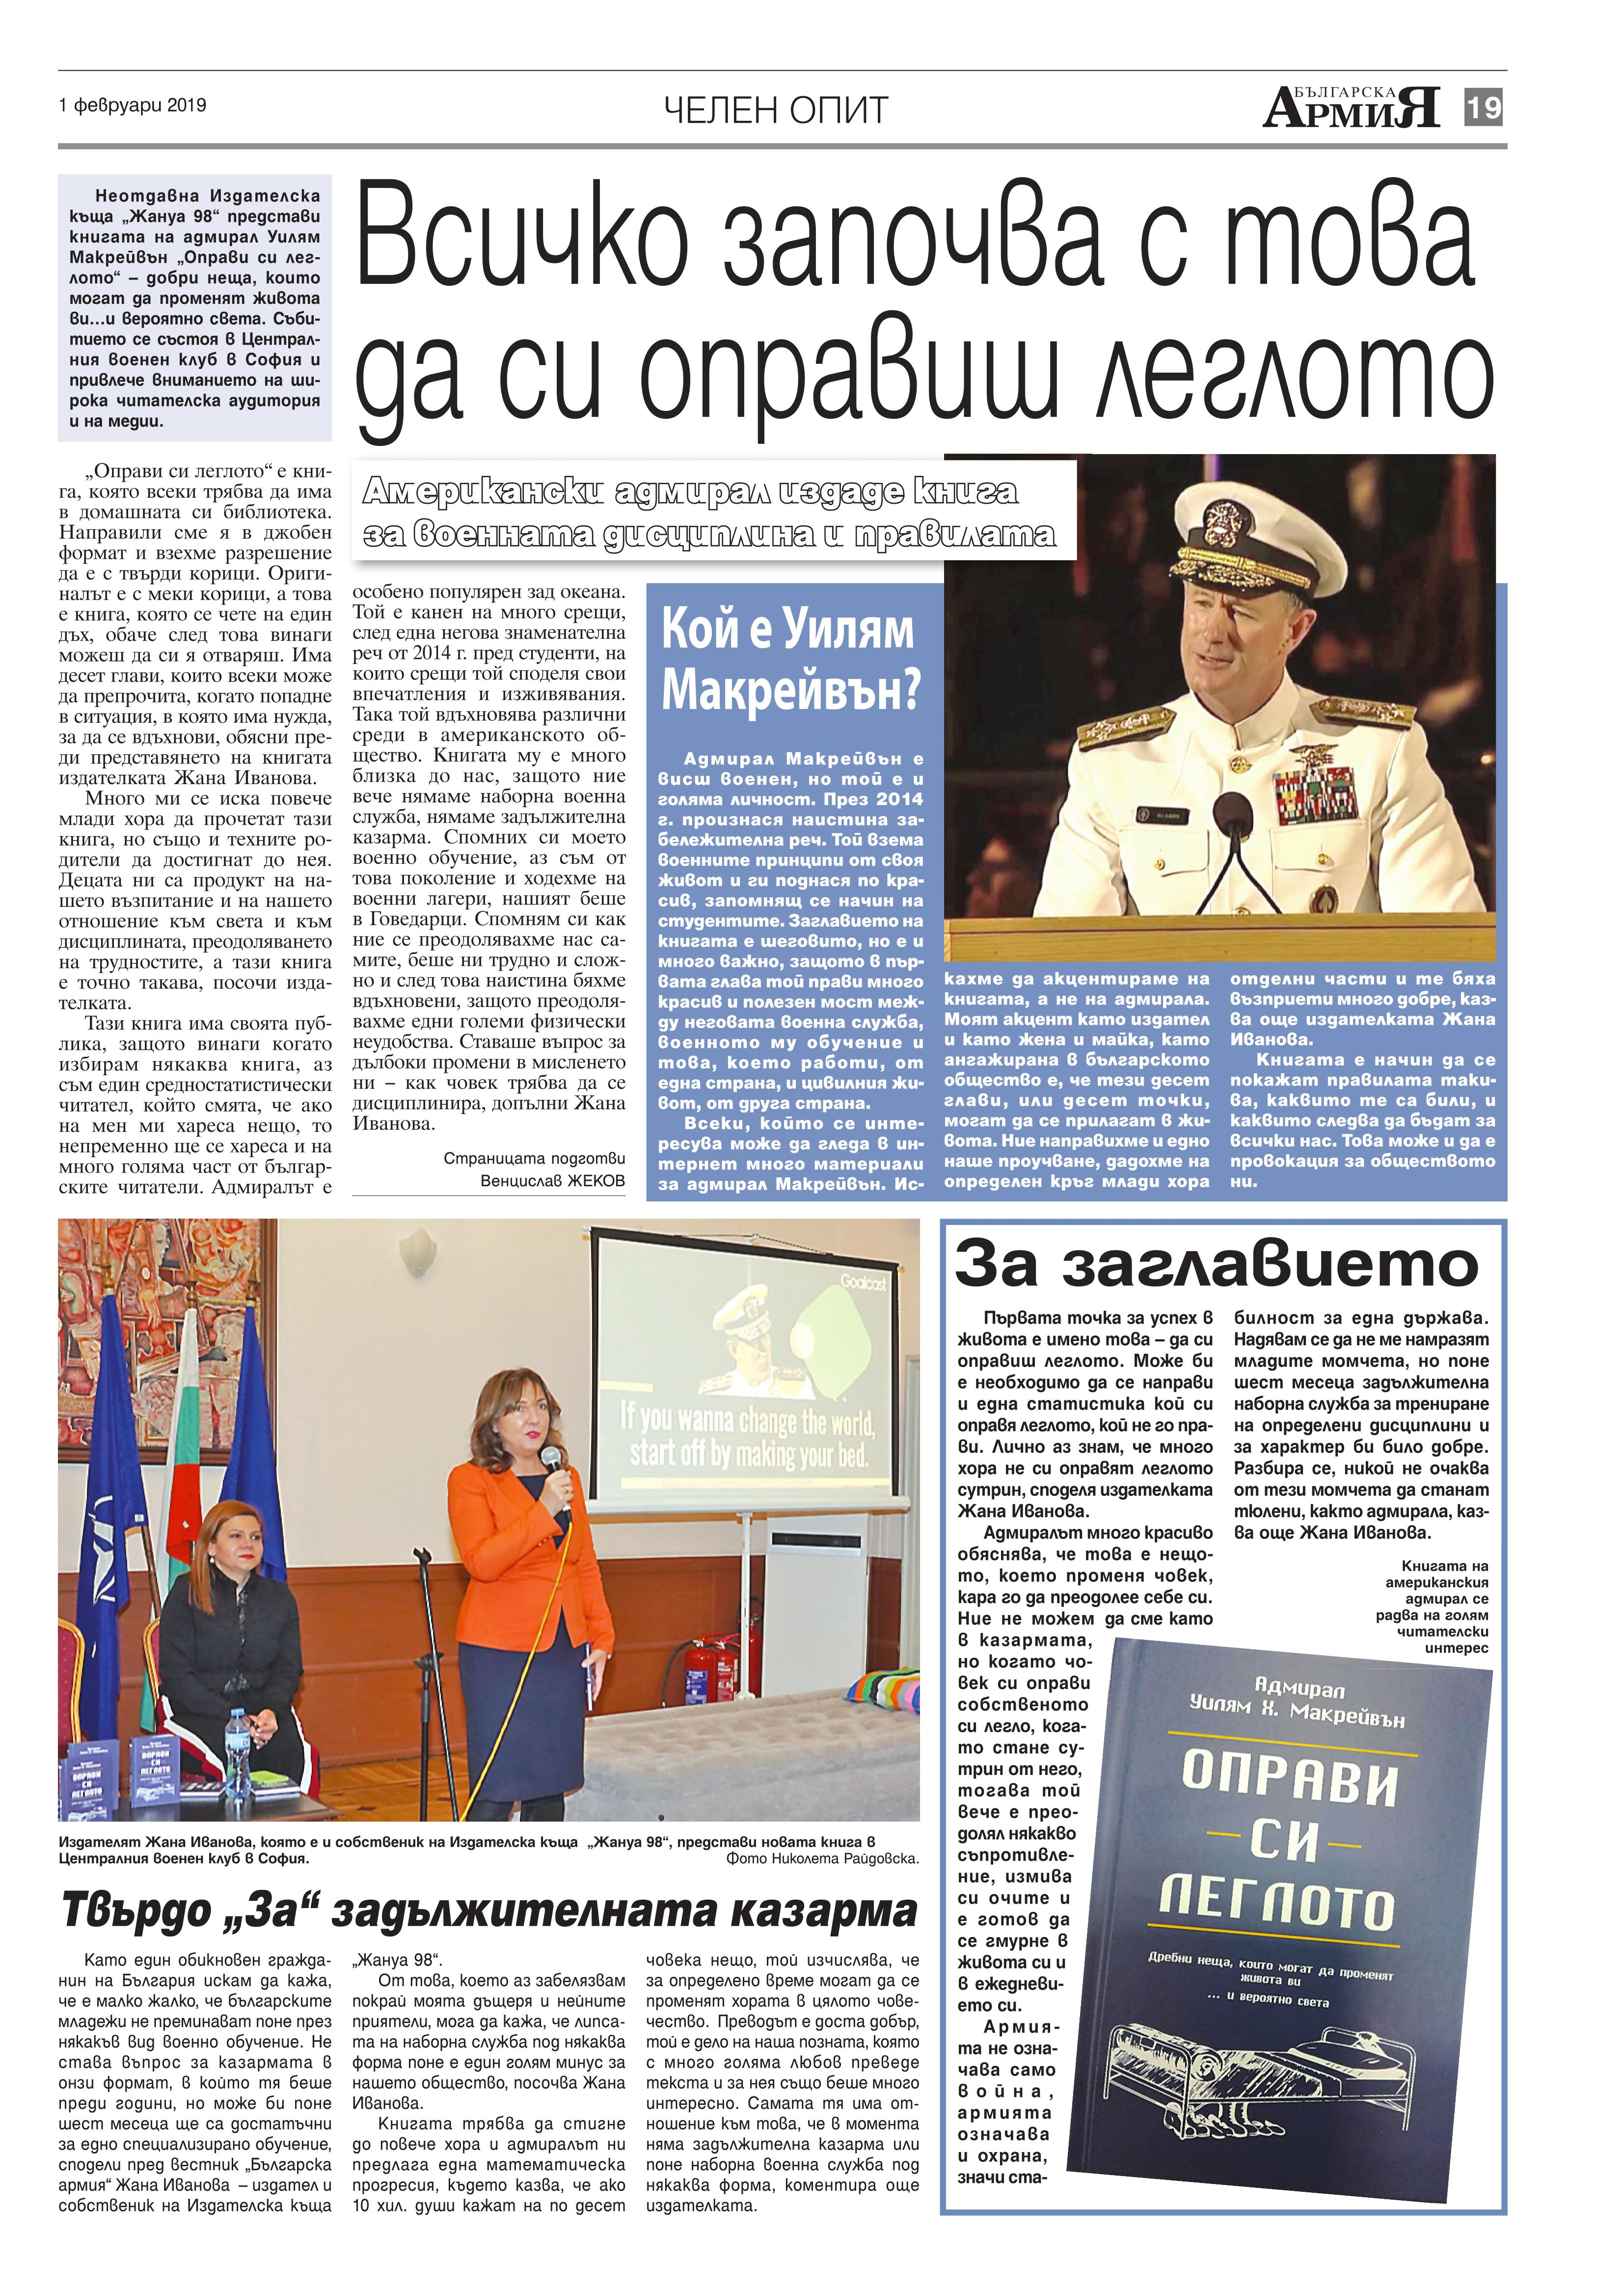 https://armymedia.bg/wp-content/uploads/2015/06/19.page1_-82.jpg